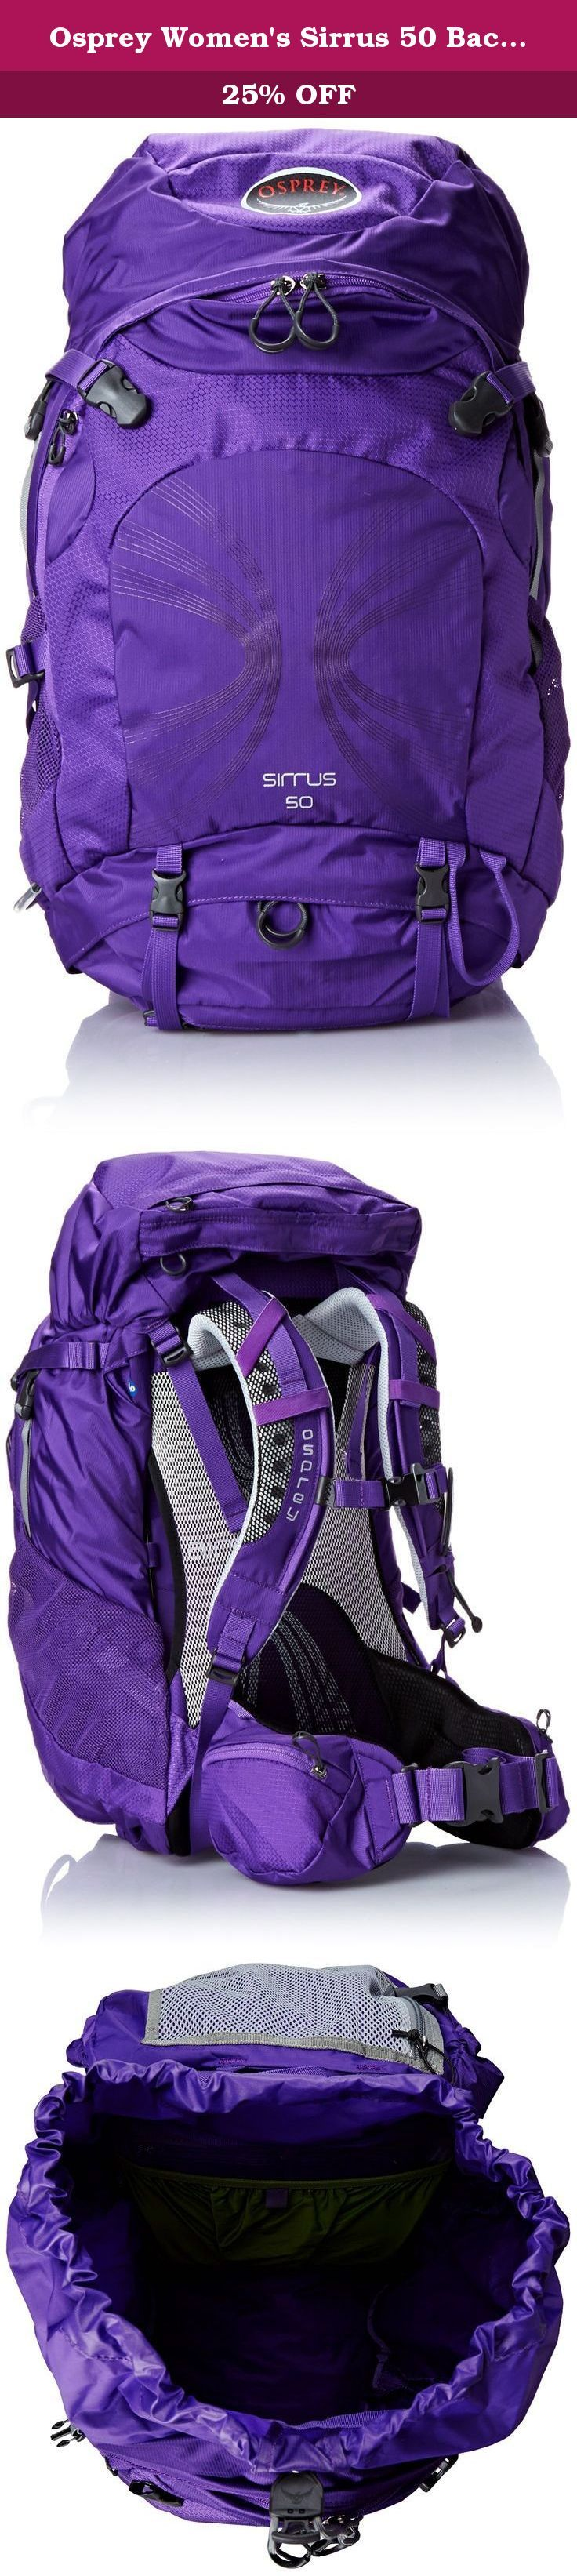 Osprey Women's Sirrus 50 Backpacks, Purple Orchid, Small/Medium. As the largest volume in the Sirrus series, the women's specific Sirrus 50 offers our proven AirSpeed ventilated suspension system in a volume perfect for overnight to weeklong backpacking trips.